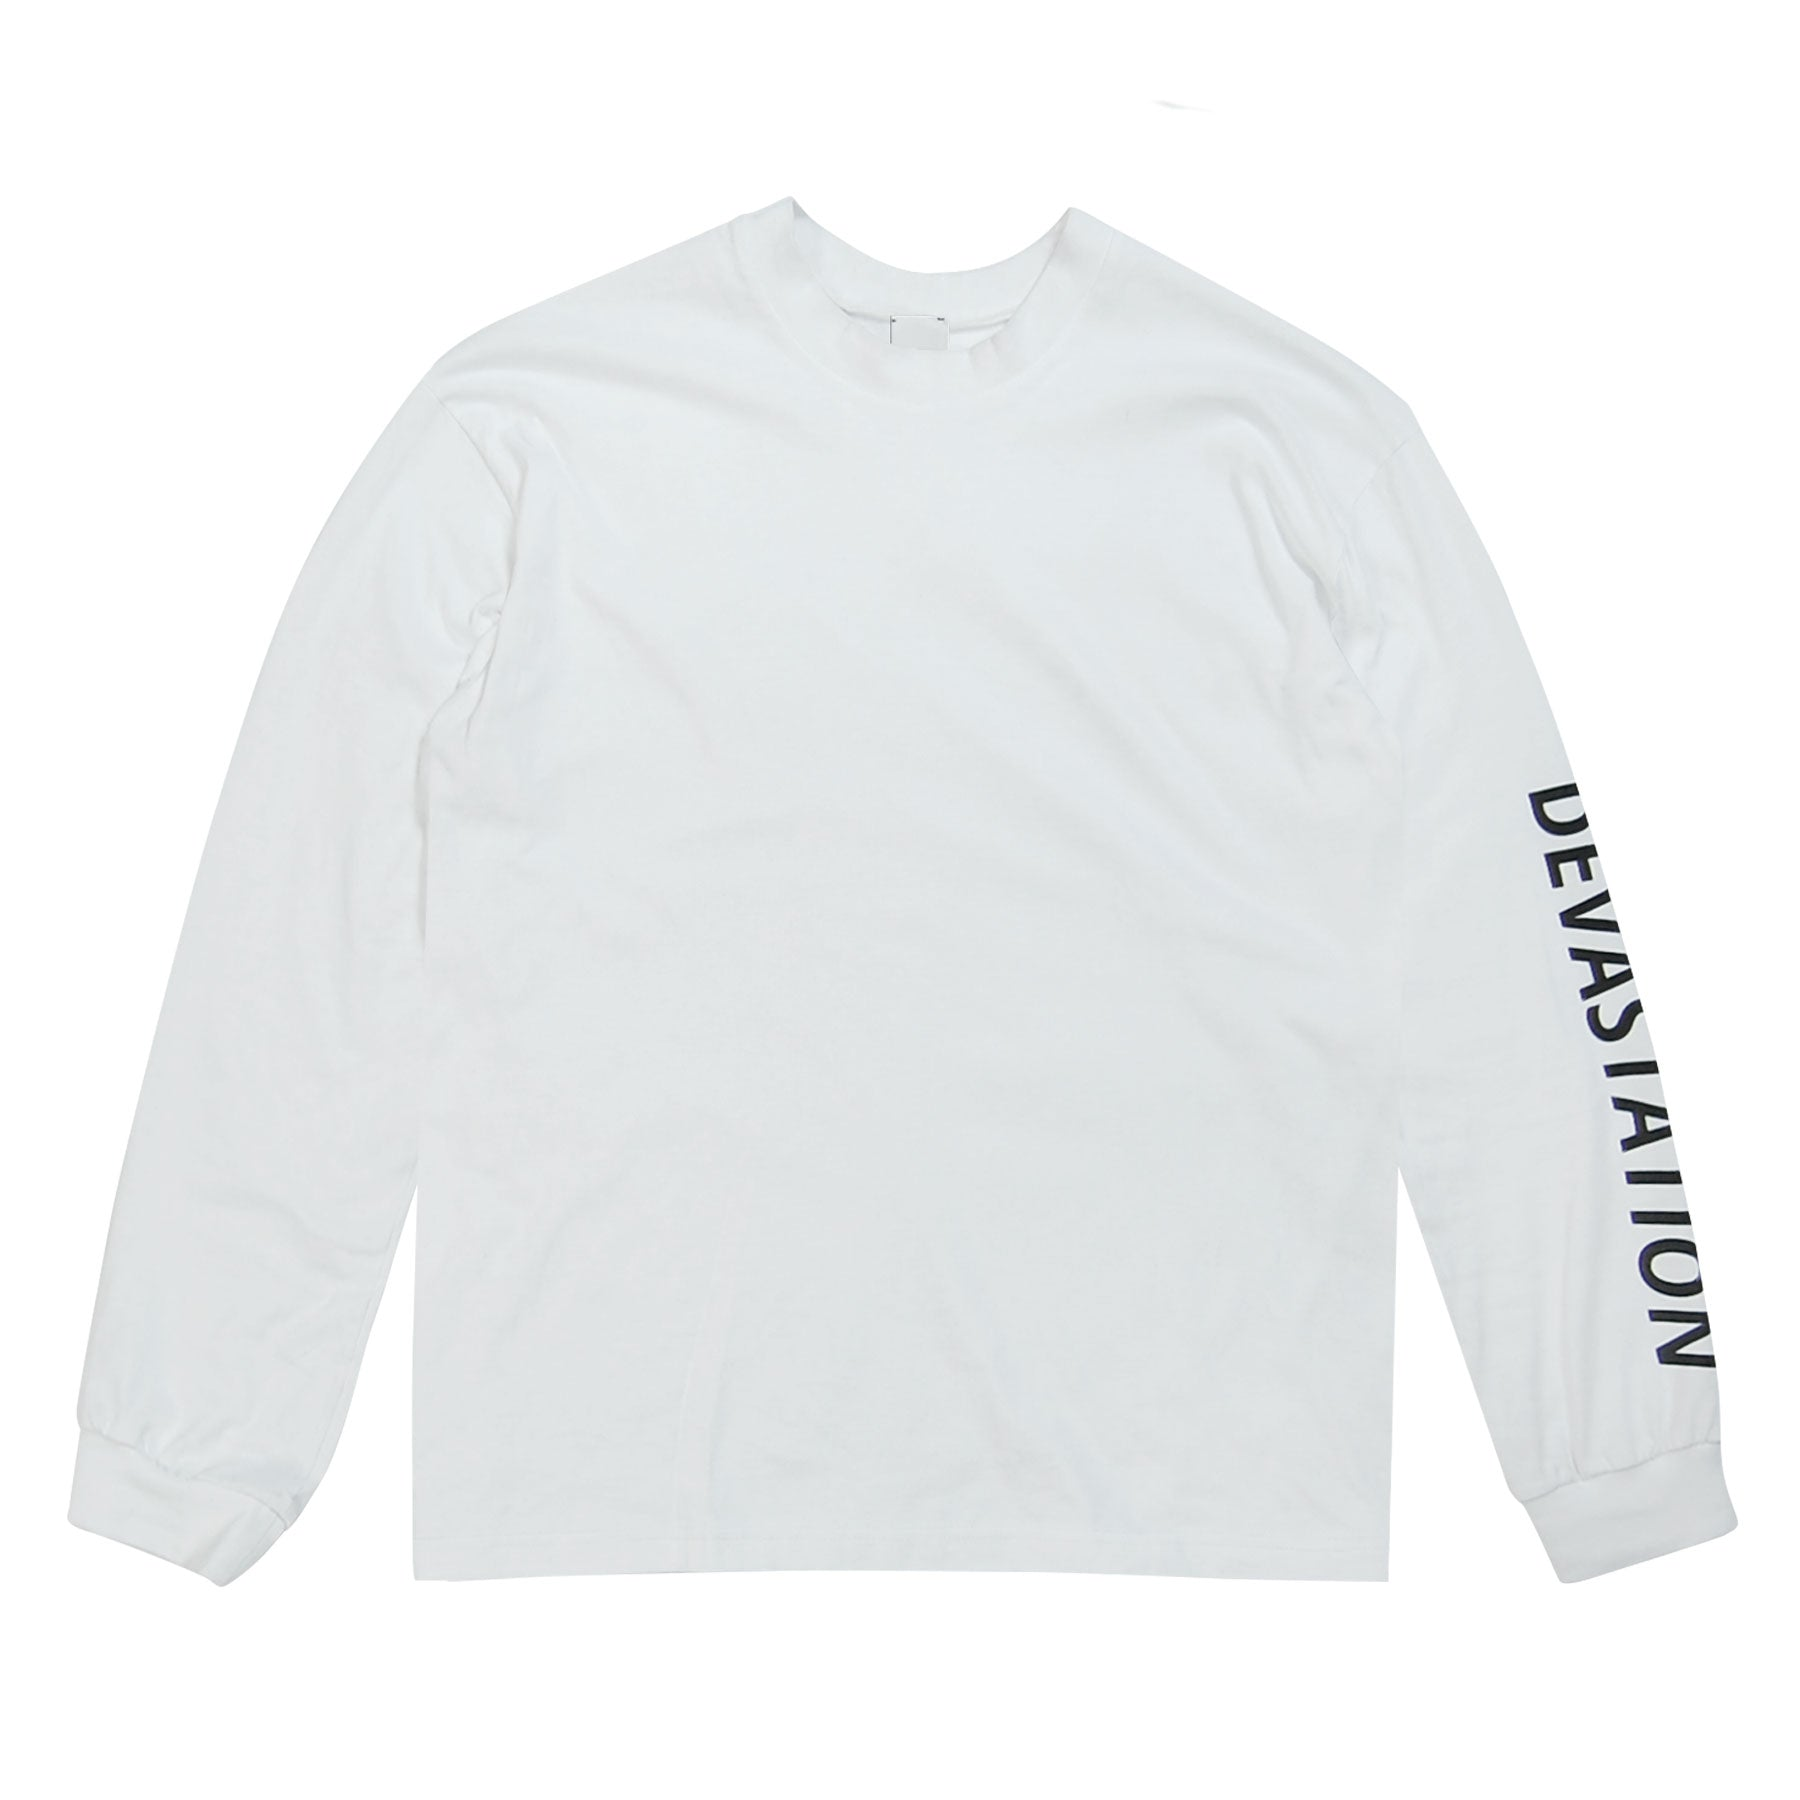 DEVASTATION LS T-SHIRT